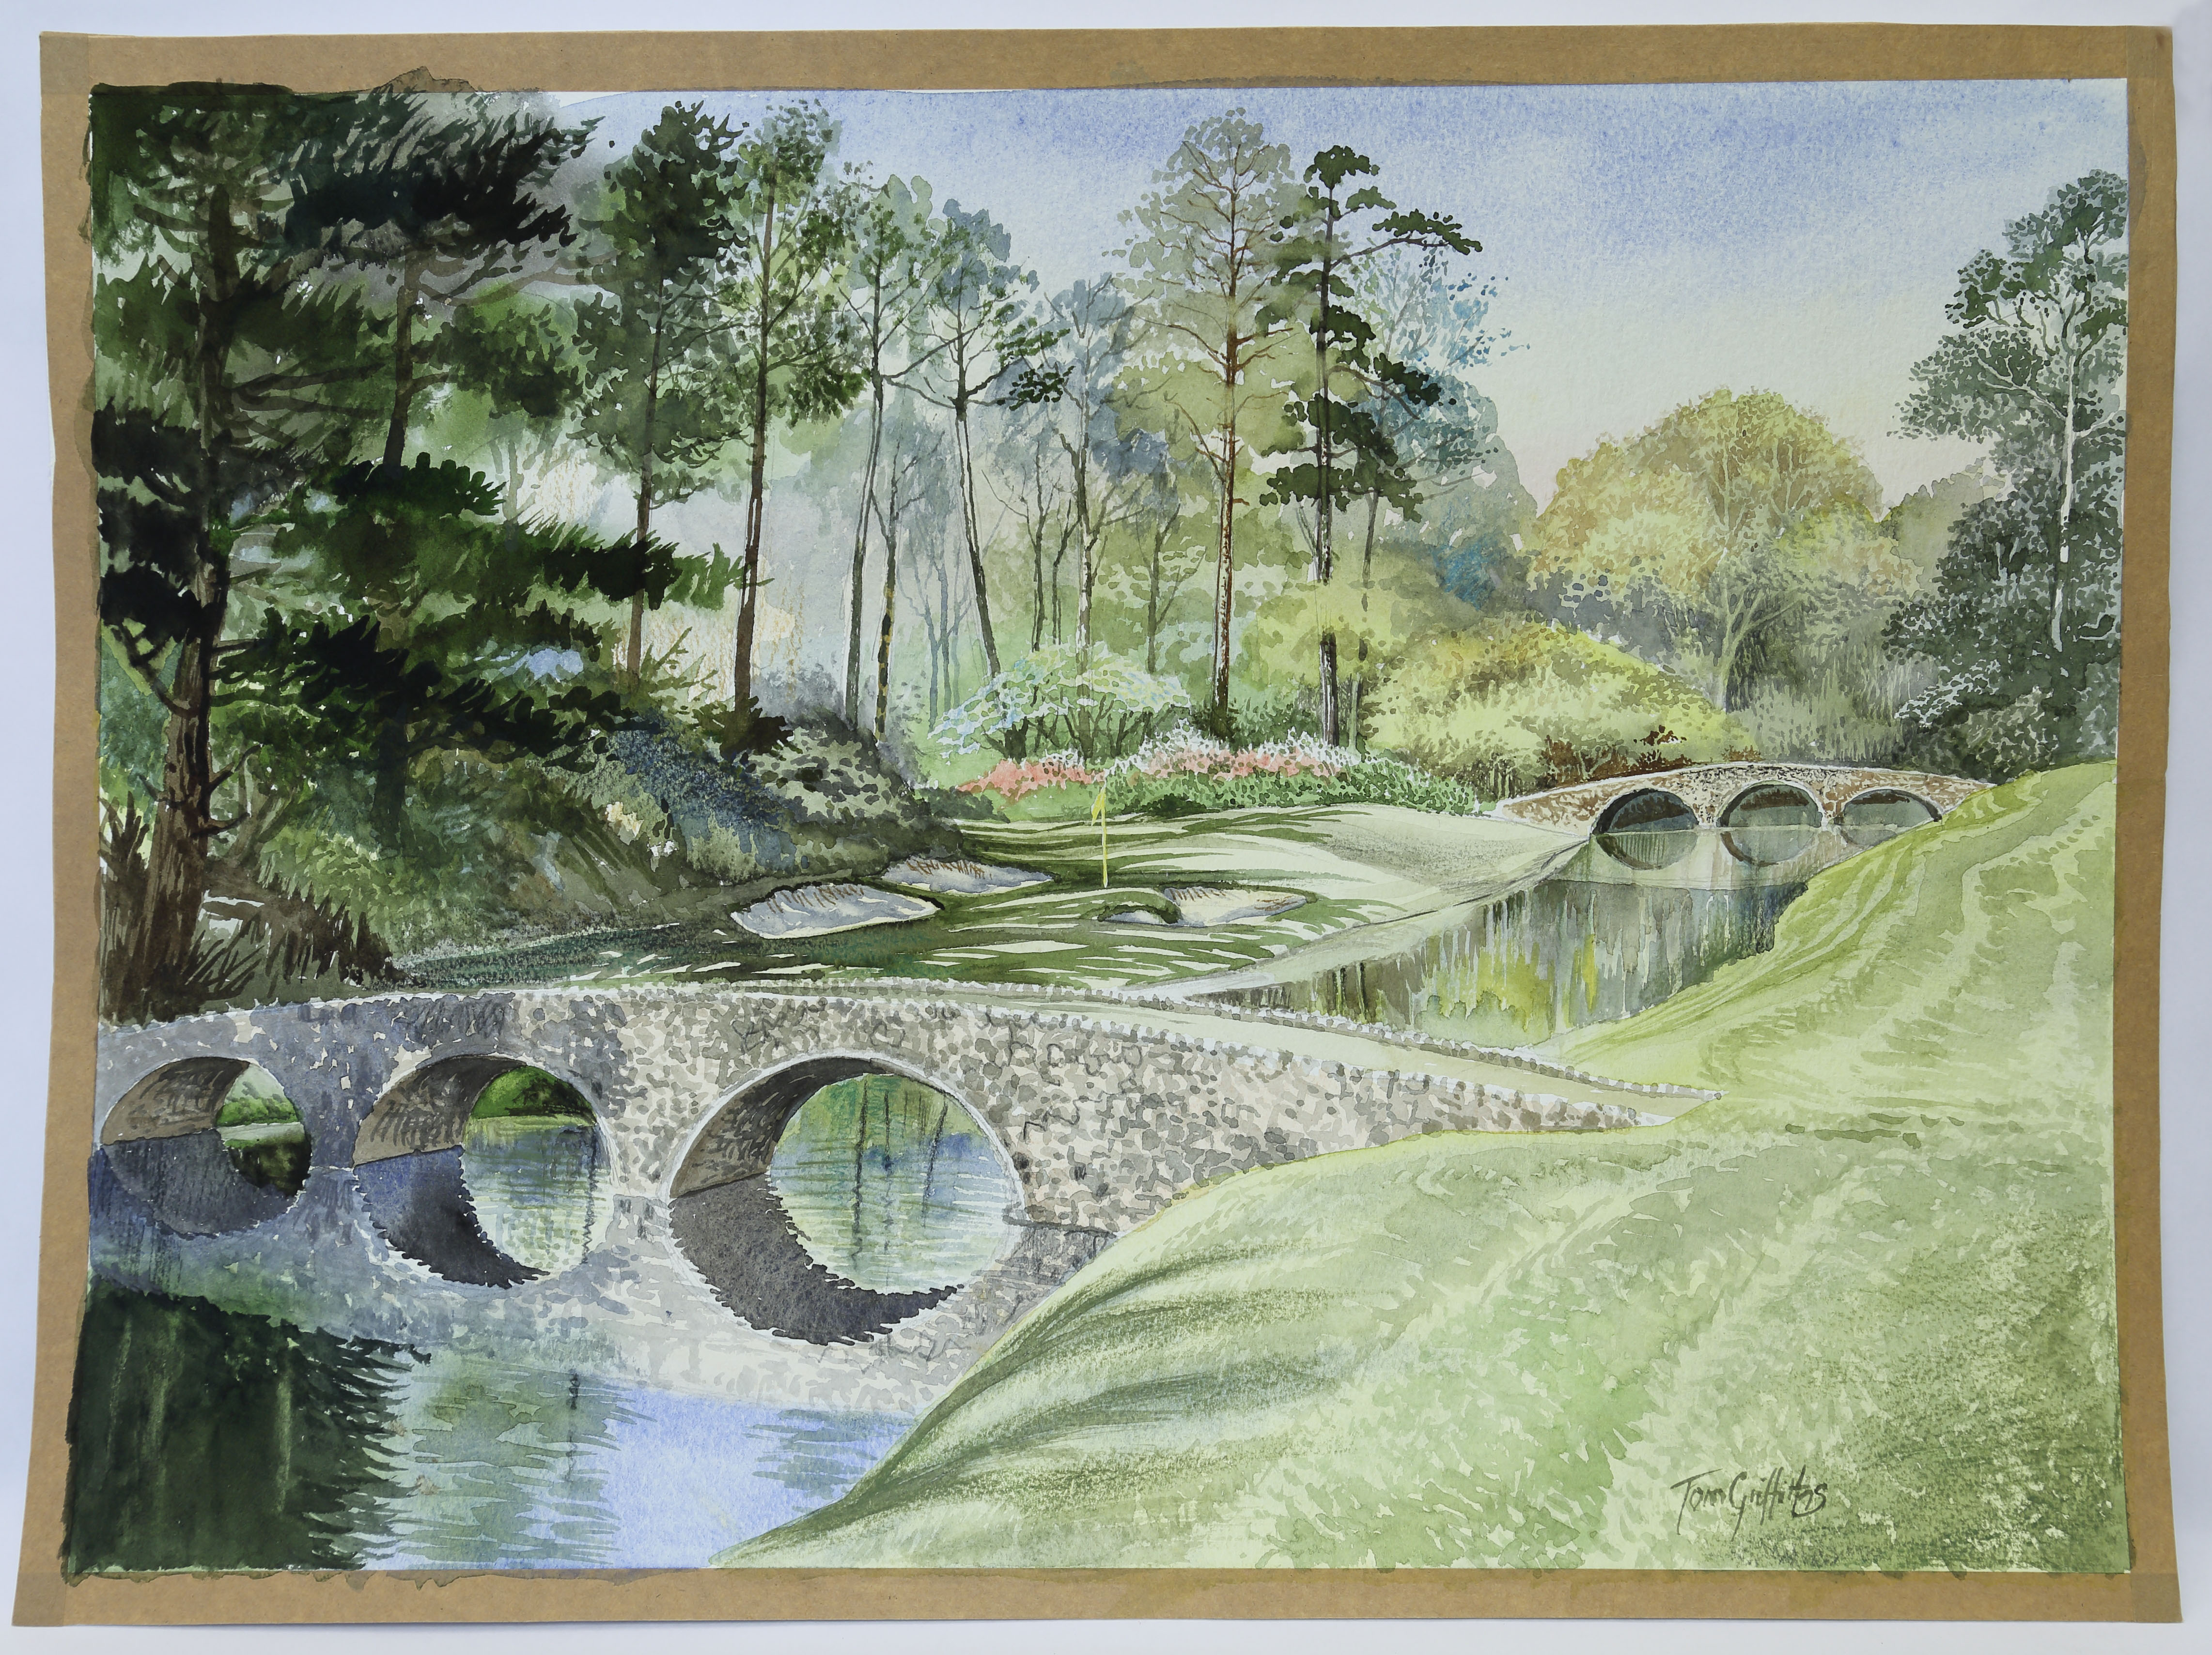 Twelfth Hole - Augusta National by T. Griffiths